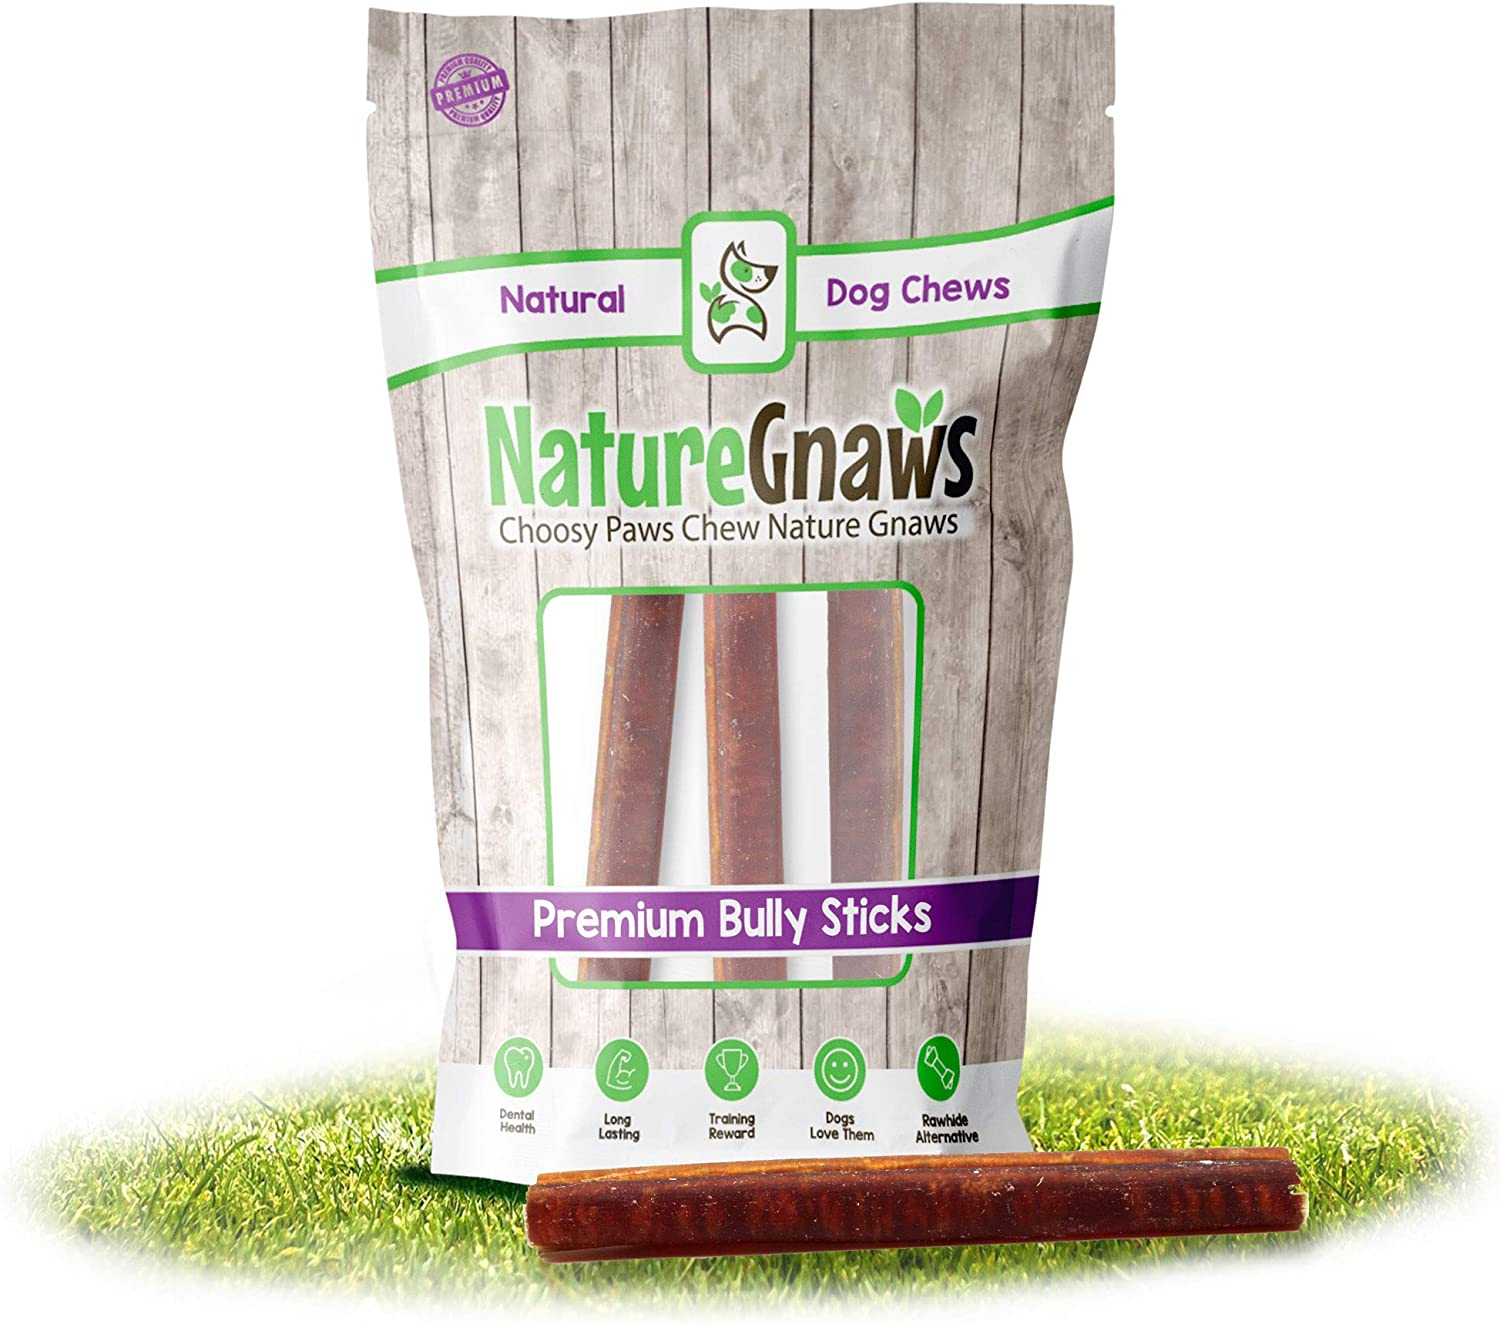 Nature Gnaws Bully Sticks for Large Dogs - Premium Natural Beef Bones - Thick Long Lasting Dog Chew Treats for Aggressive Chewers - Rawhide Free - 6 Inch